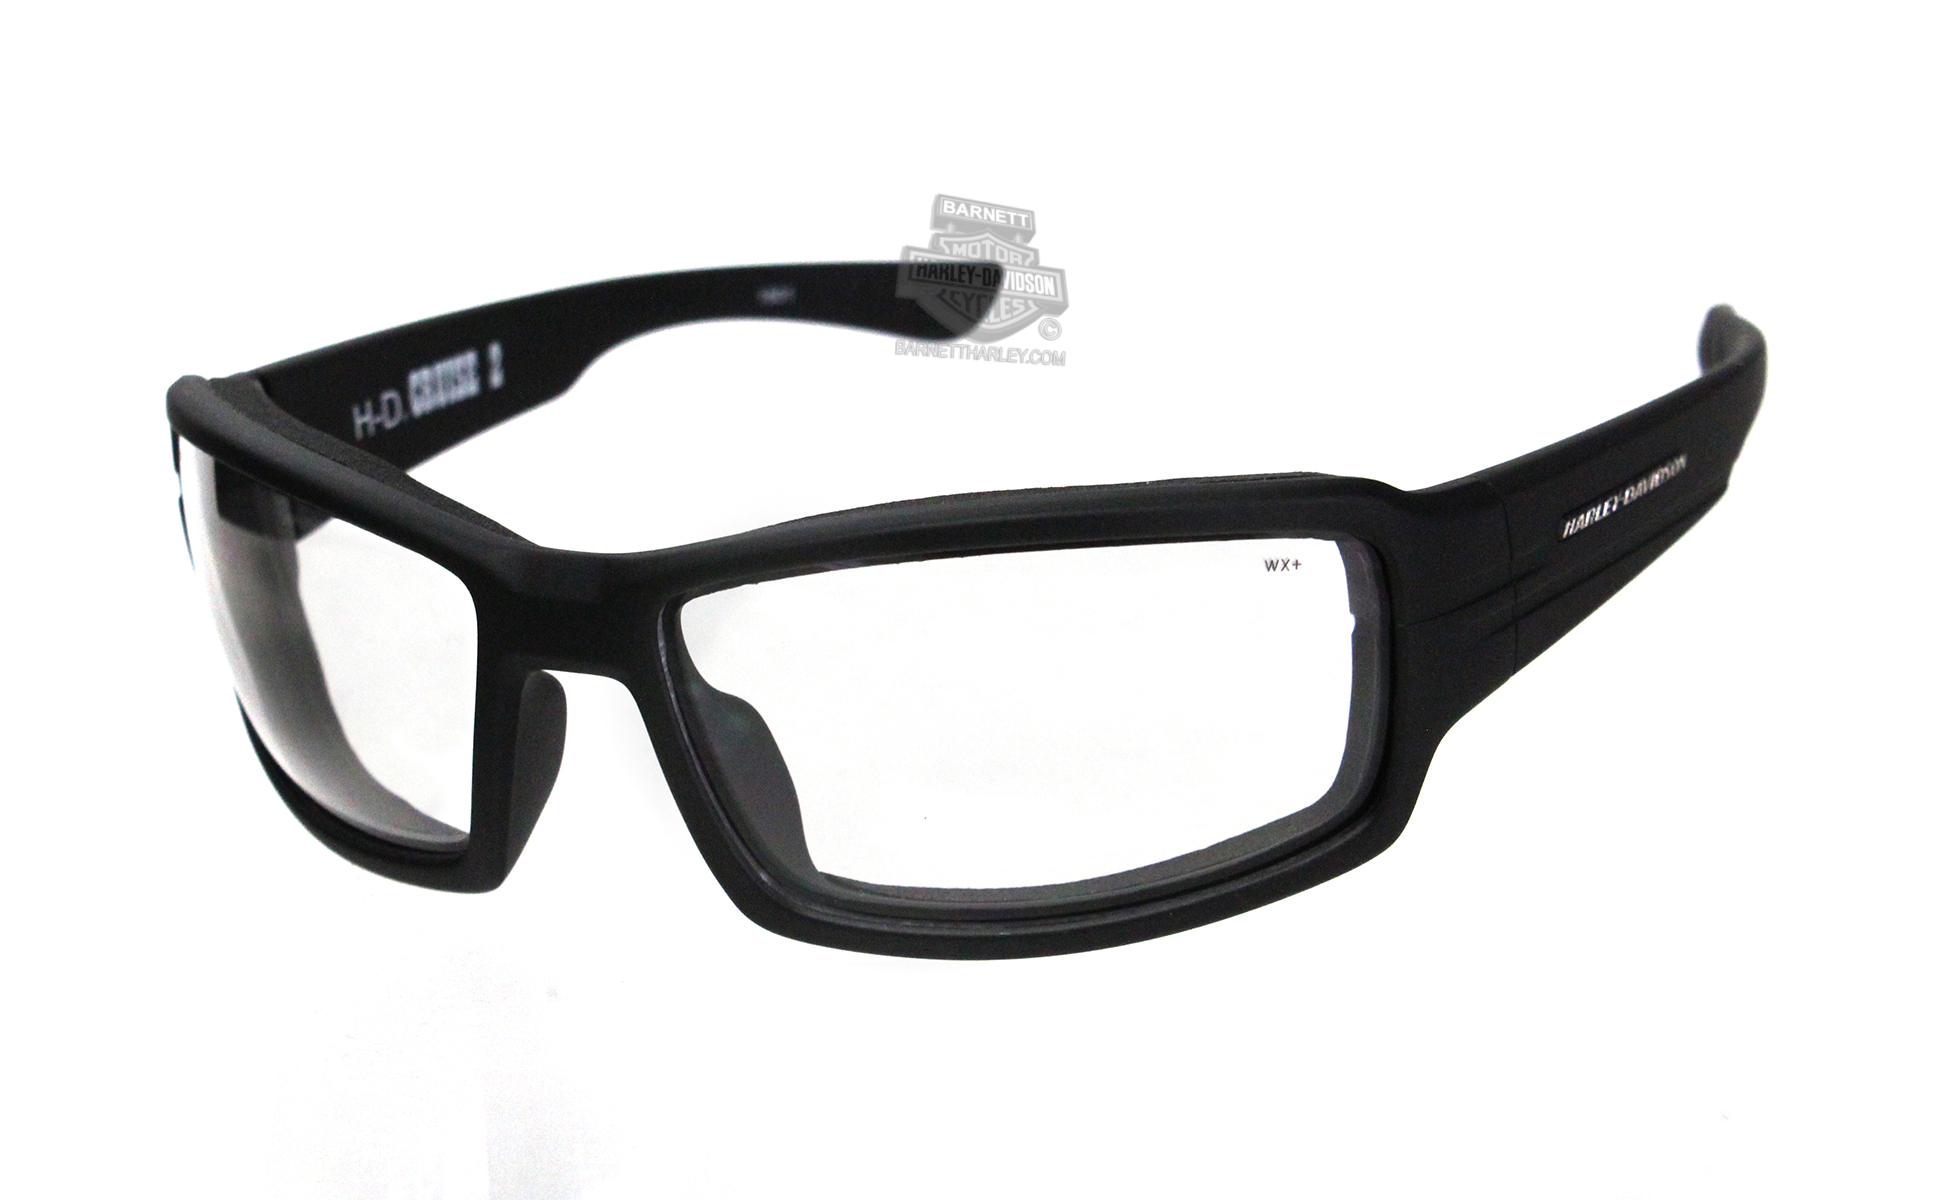 af73c99d2b9 Harley-Davidson® HD Cruise 2 Clear lens in a Matte Black Frame Sunglasses  by Wiley X®